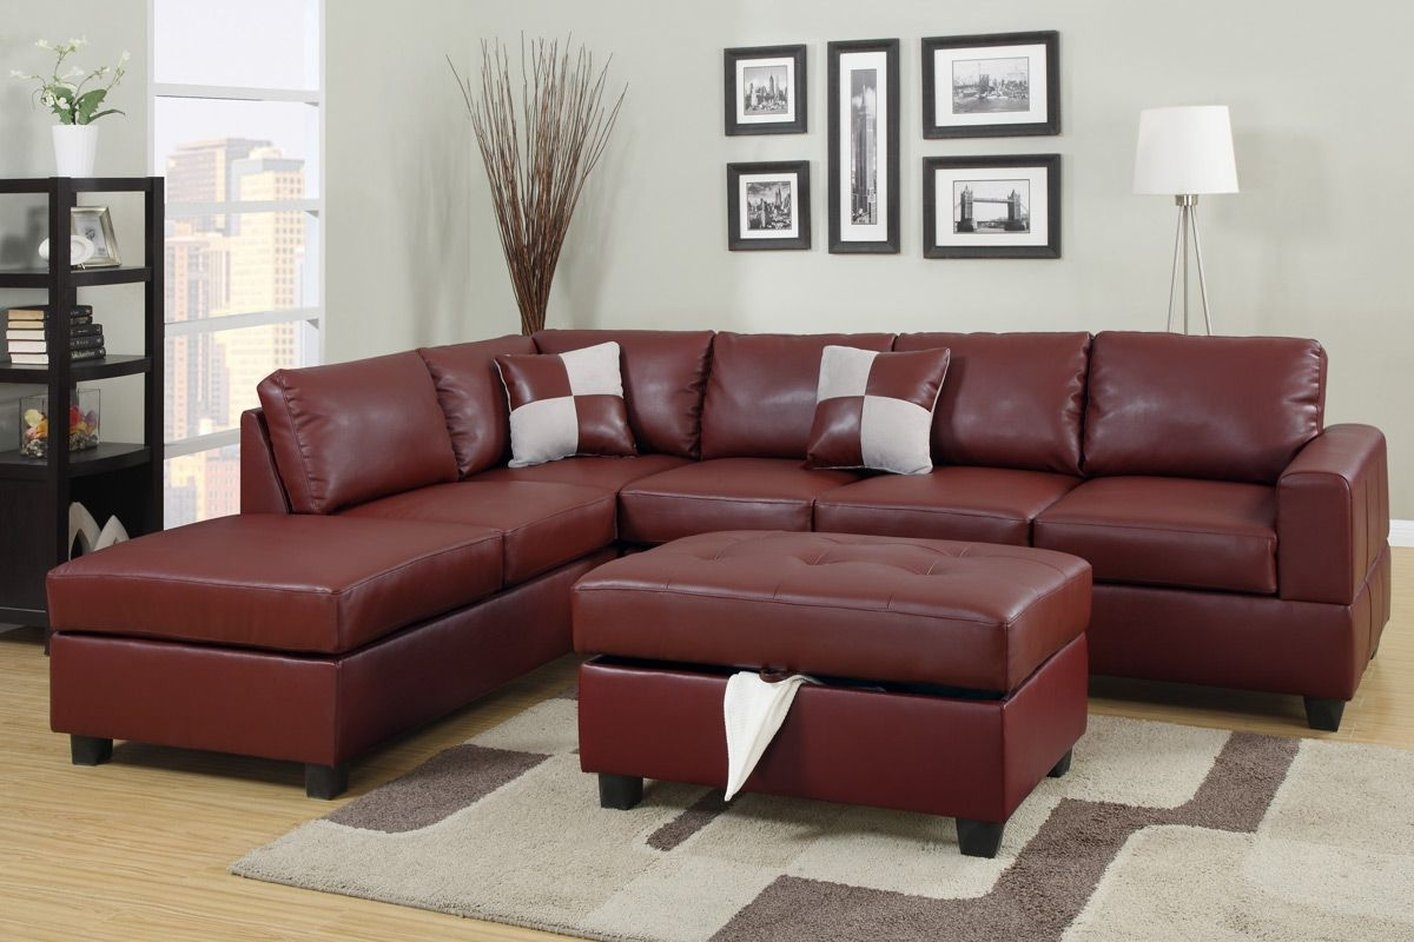 April Red Leather Sectional Sofa And Ottoman – Steal A Sofa Regarding Red Leather Sectional Couches (Image 2 of 10)